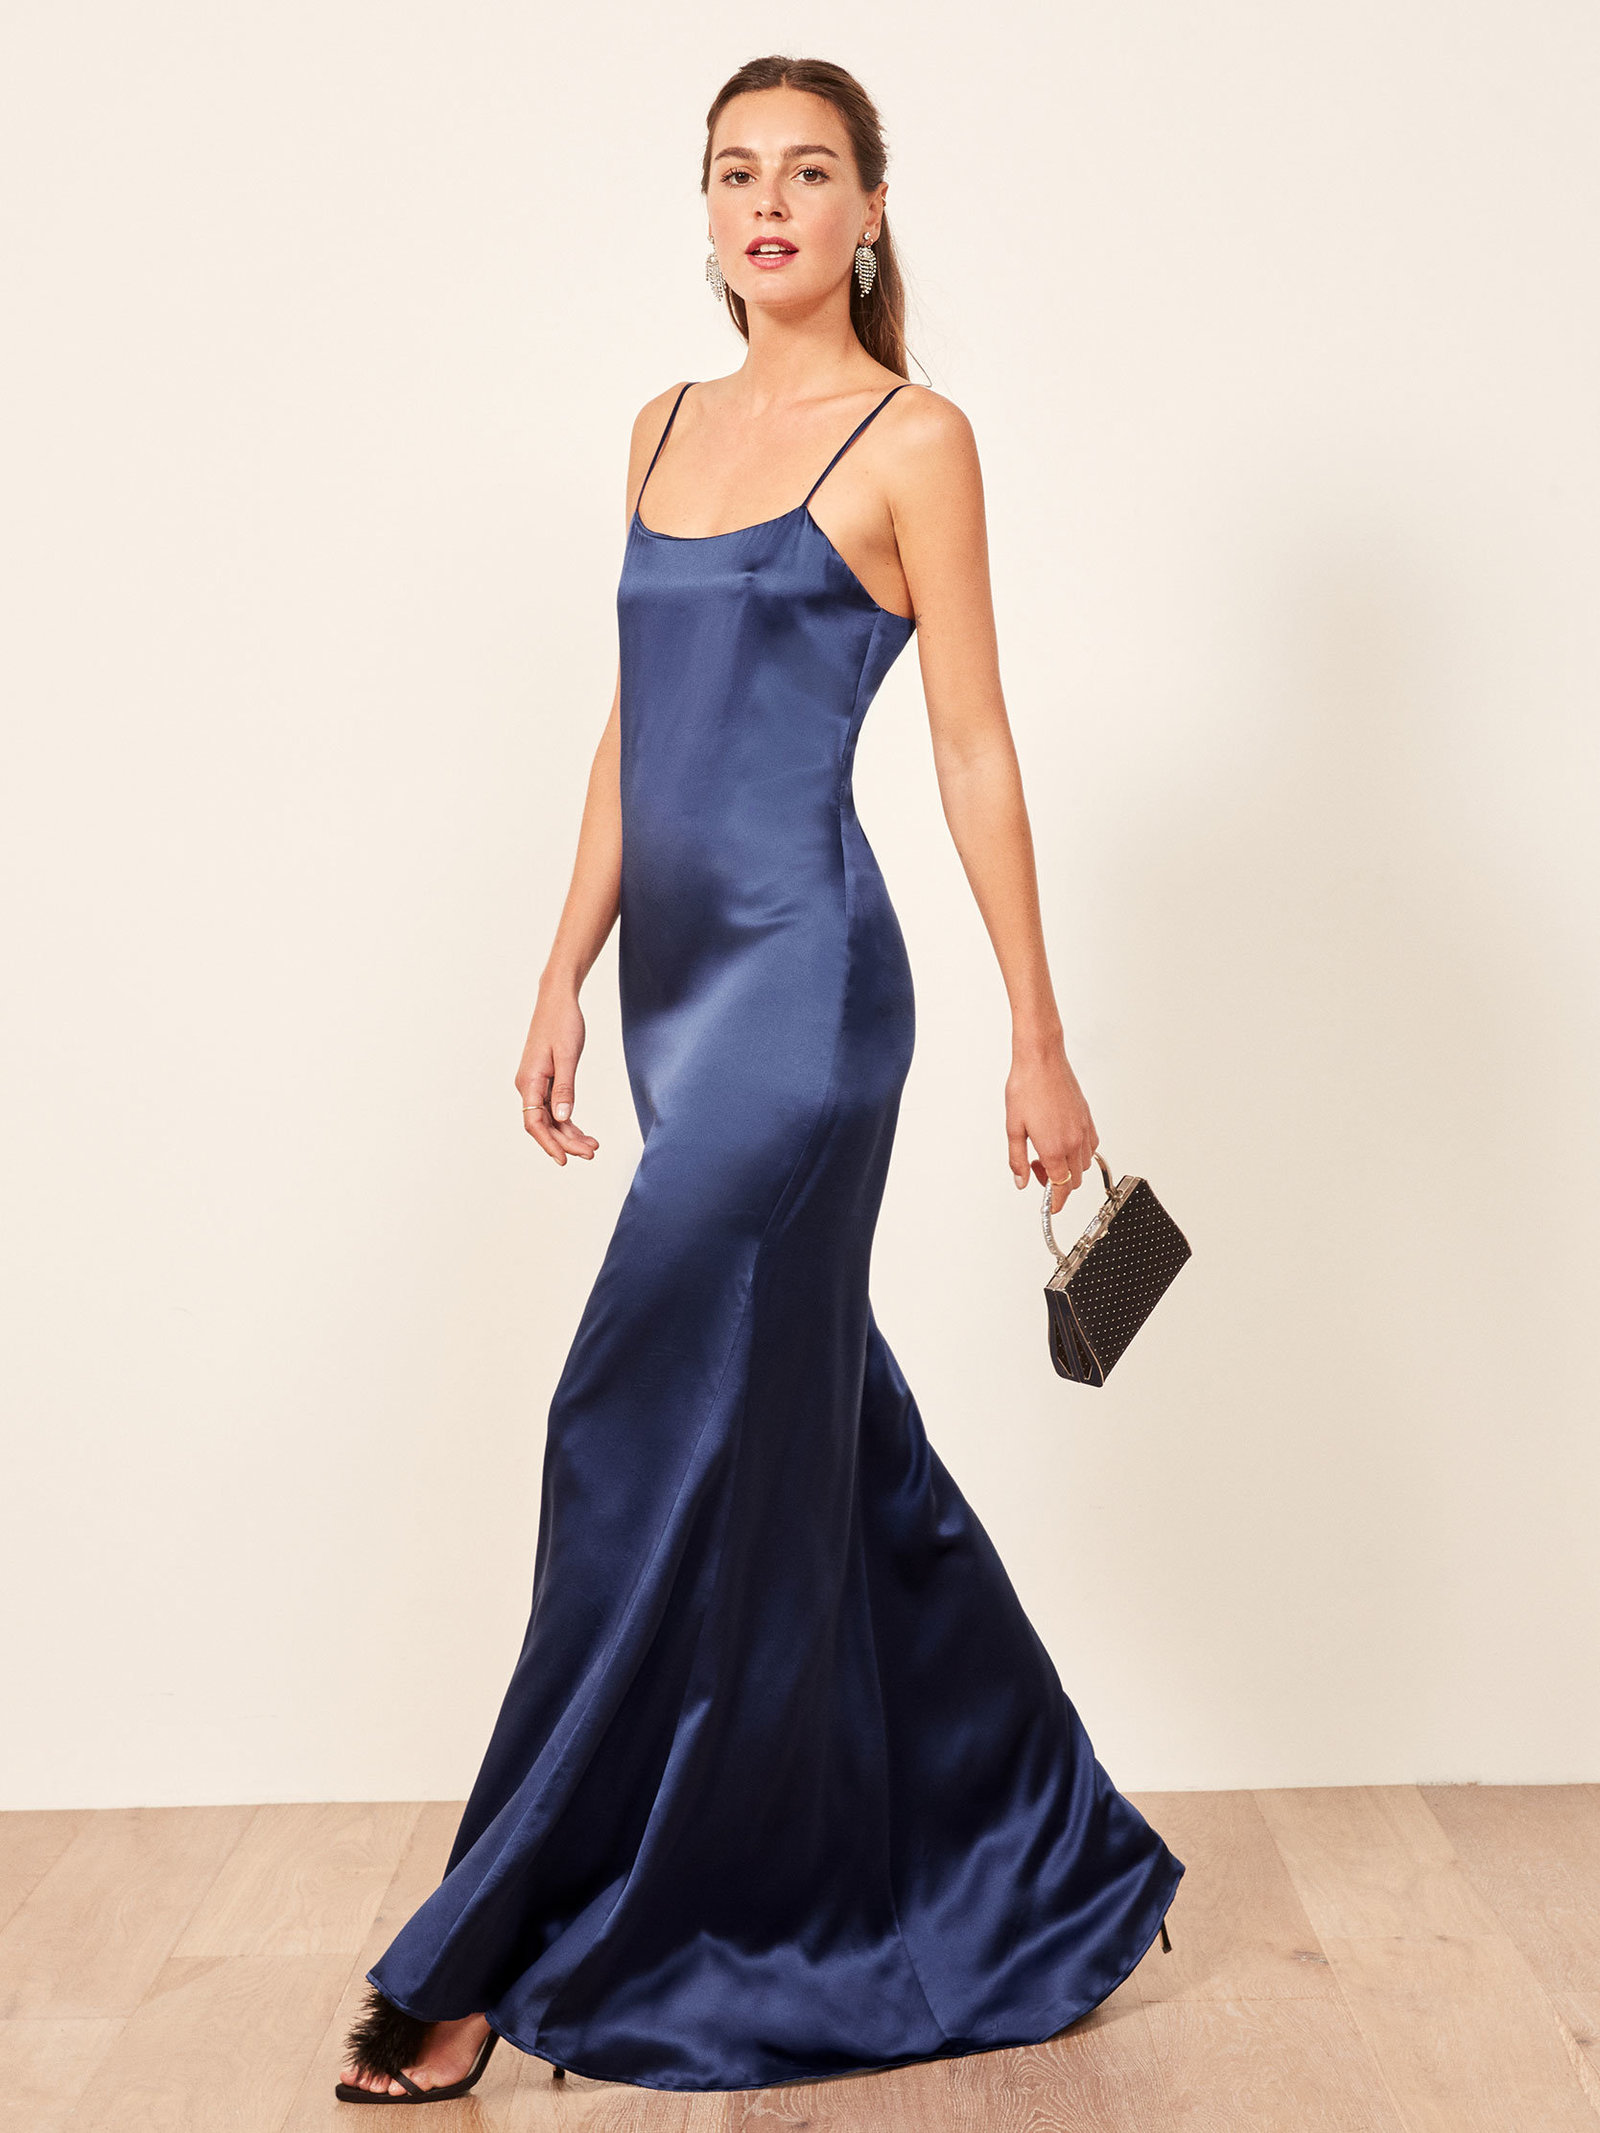 18 Fall Wedding Guest Dresses For Extra Small Ceremonies Athena Dresses Fall Wedding Guest Dress Fall Wedding Outfits [ 2133 x 1600 Pixel ]